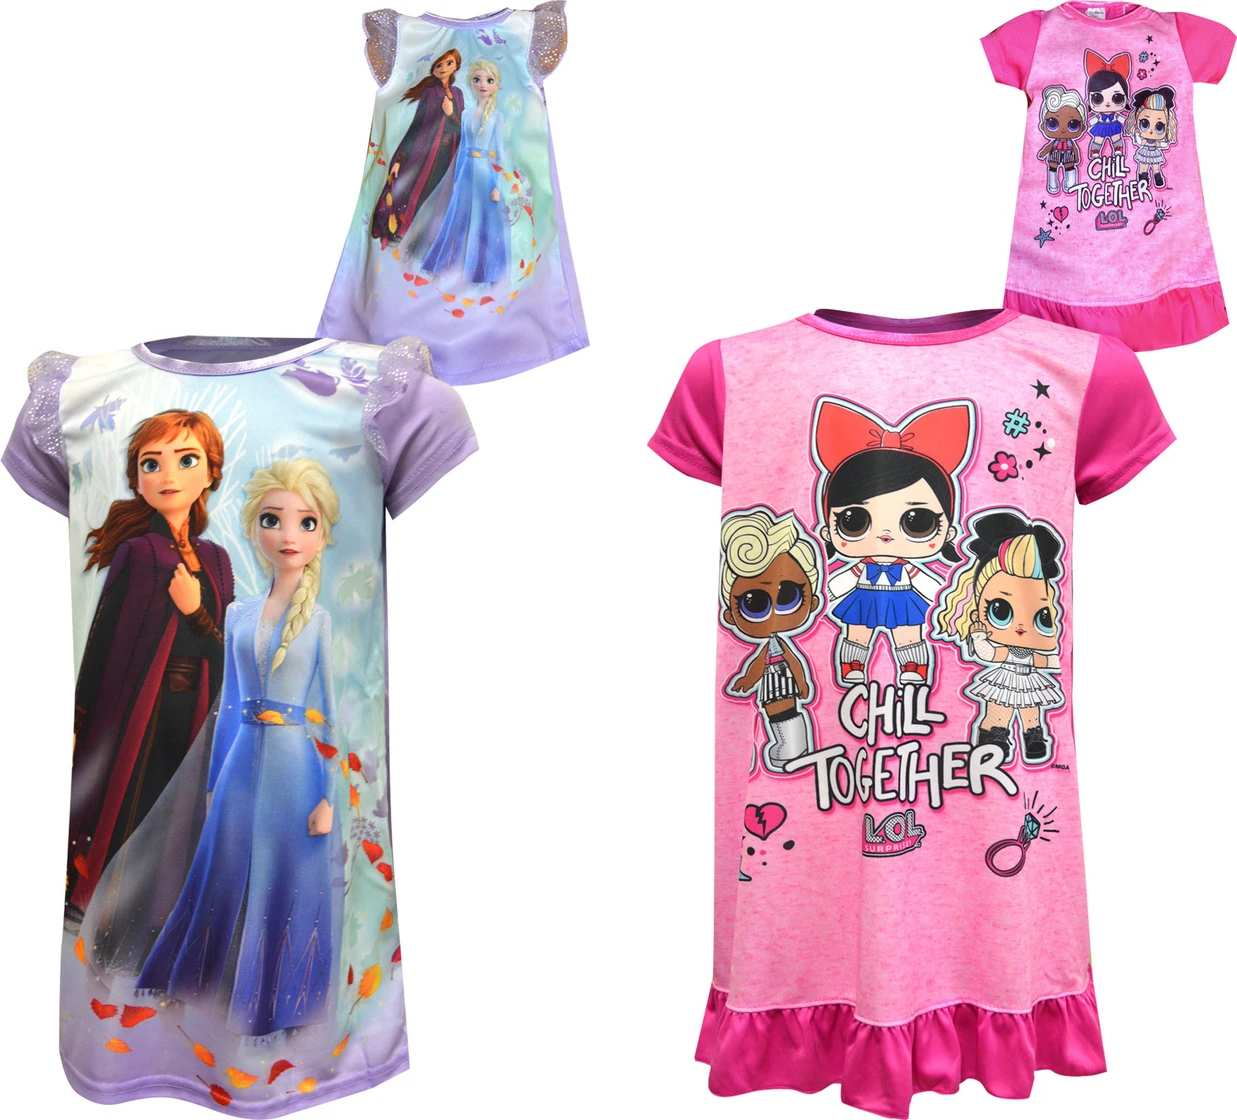 nightgowns for girls